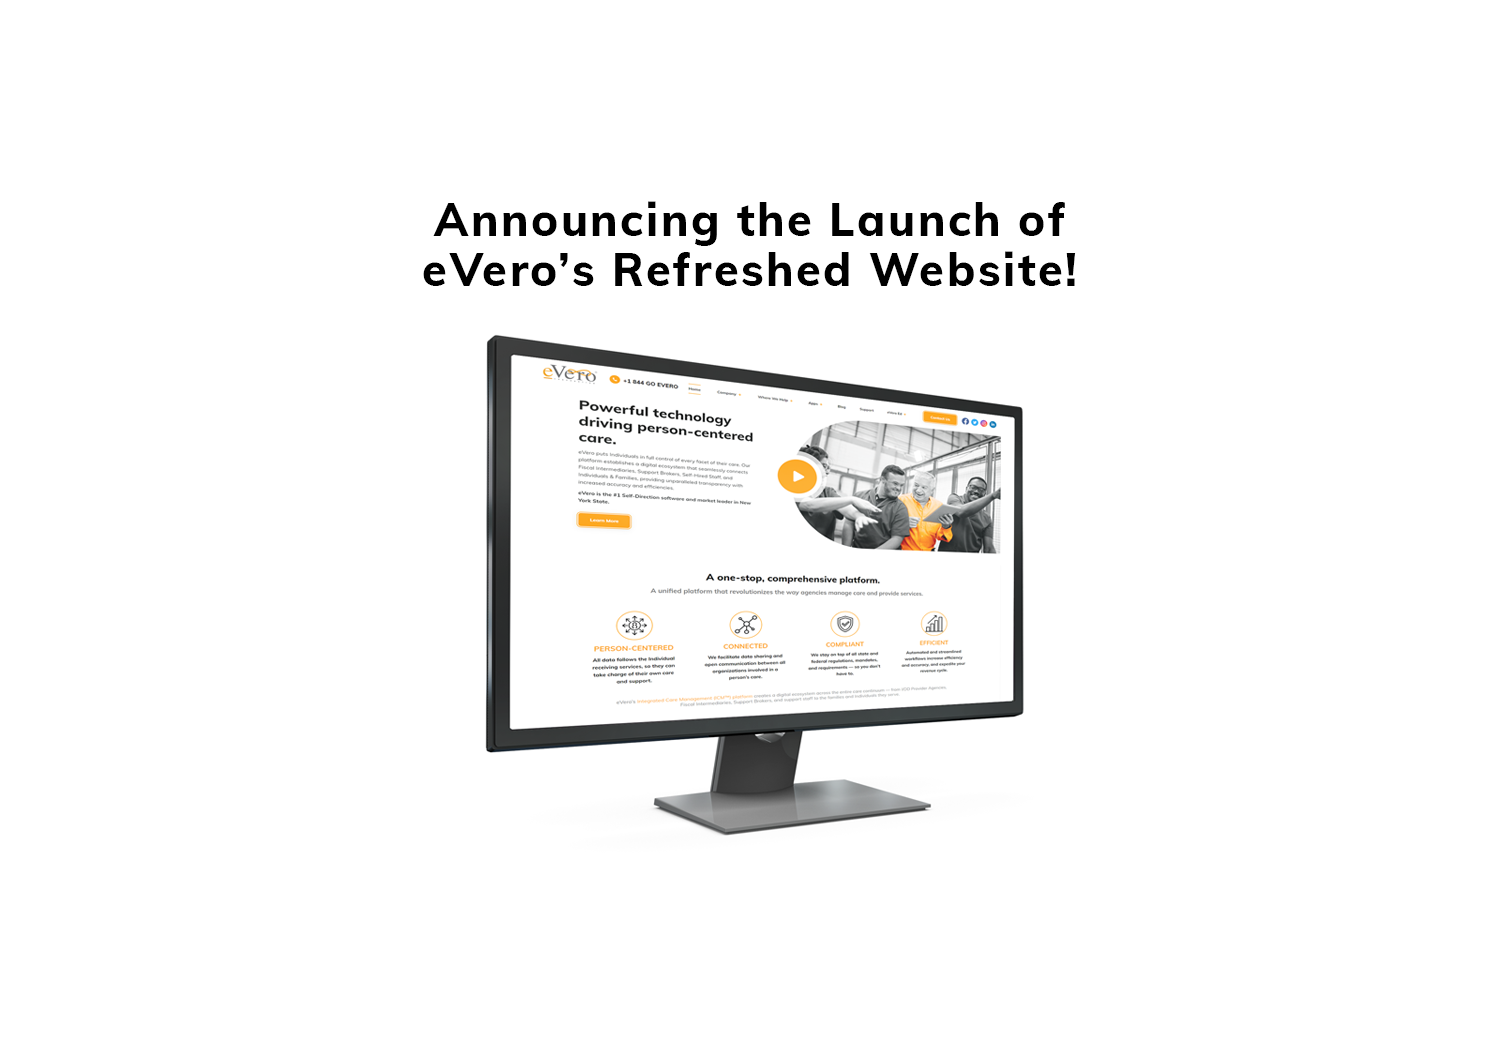 eVero launches new website with enhanced navigation and modern design!